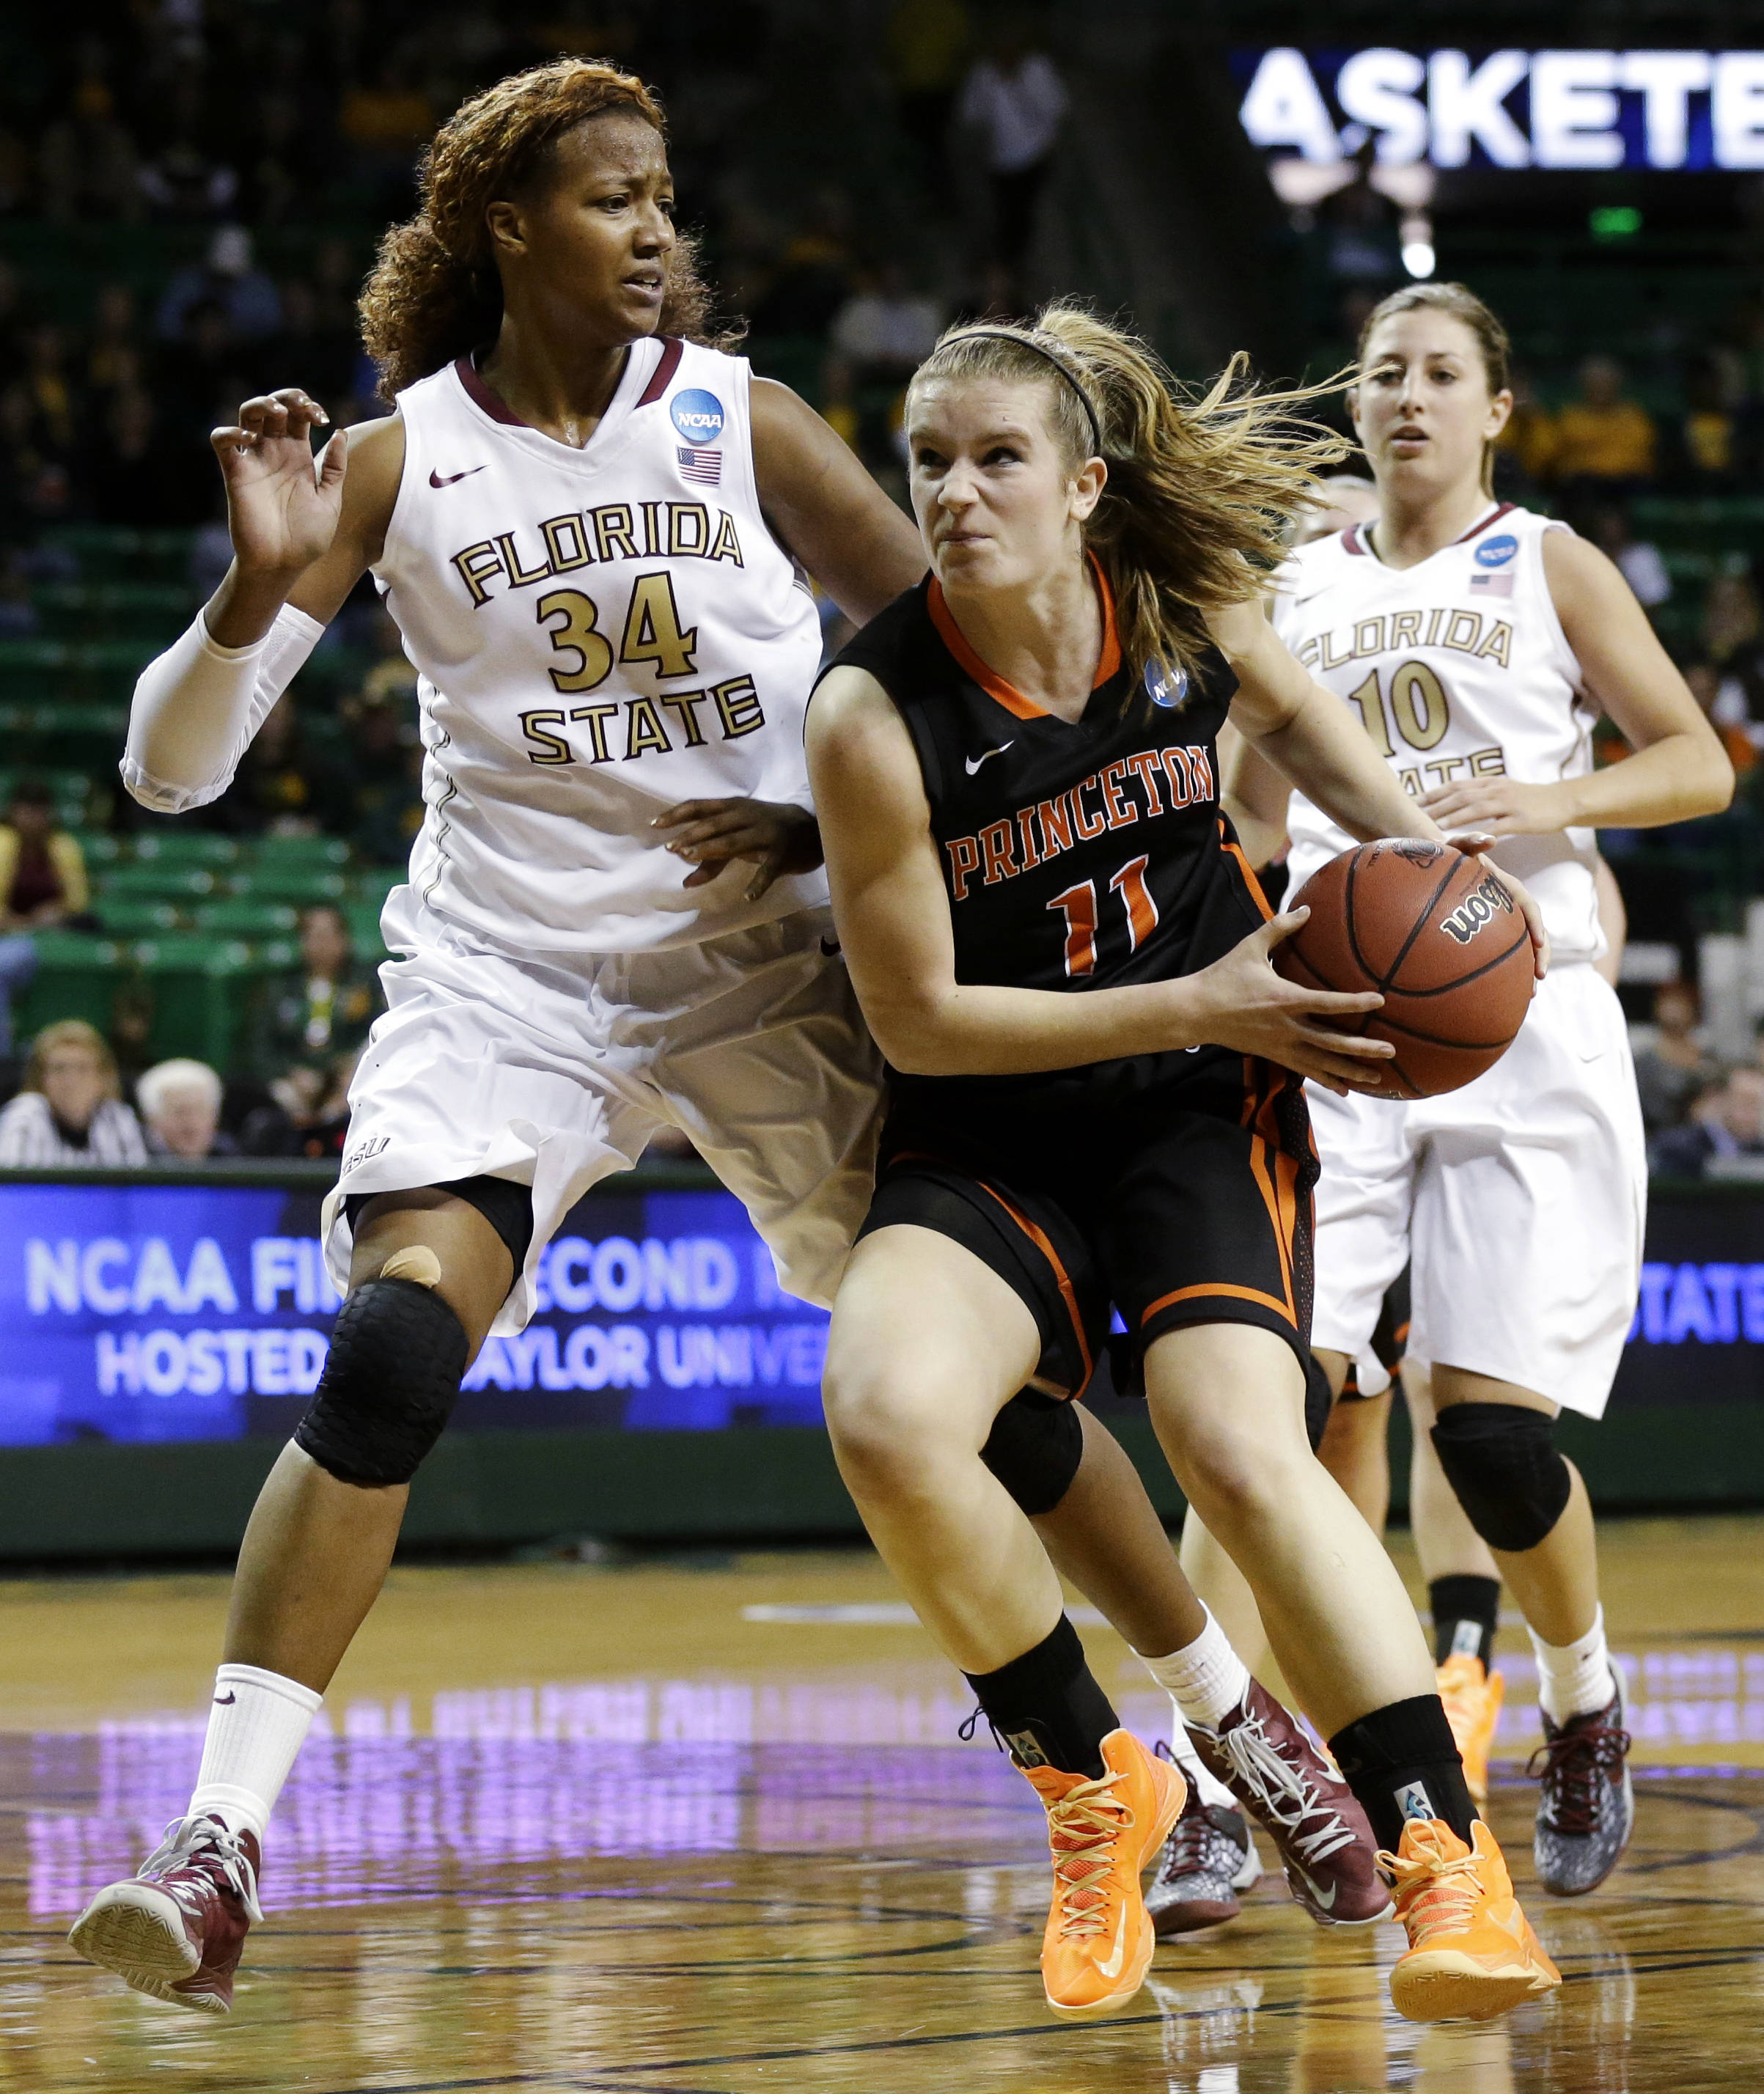 Princeton's Blake Dietrick (11) moves to the basket against Florida State's Chelsea Davis (34) as Leonor Rodriguez (10) watches in the second half of a first-round game in the women's NCAA college basketball tournament, Sunday, March 24, 2013, in Waco, Texas. FSU won 60-44. (AP Photo/Tony Gutierrez)